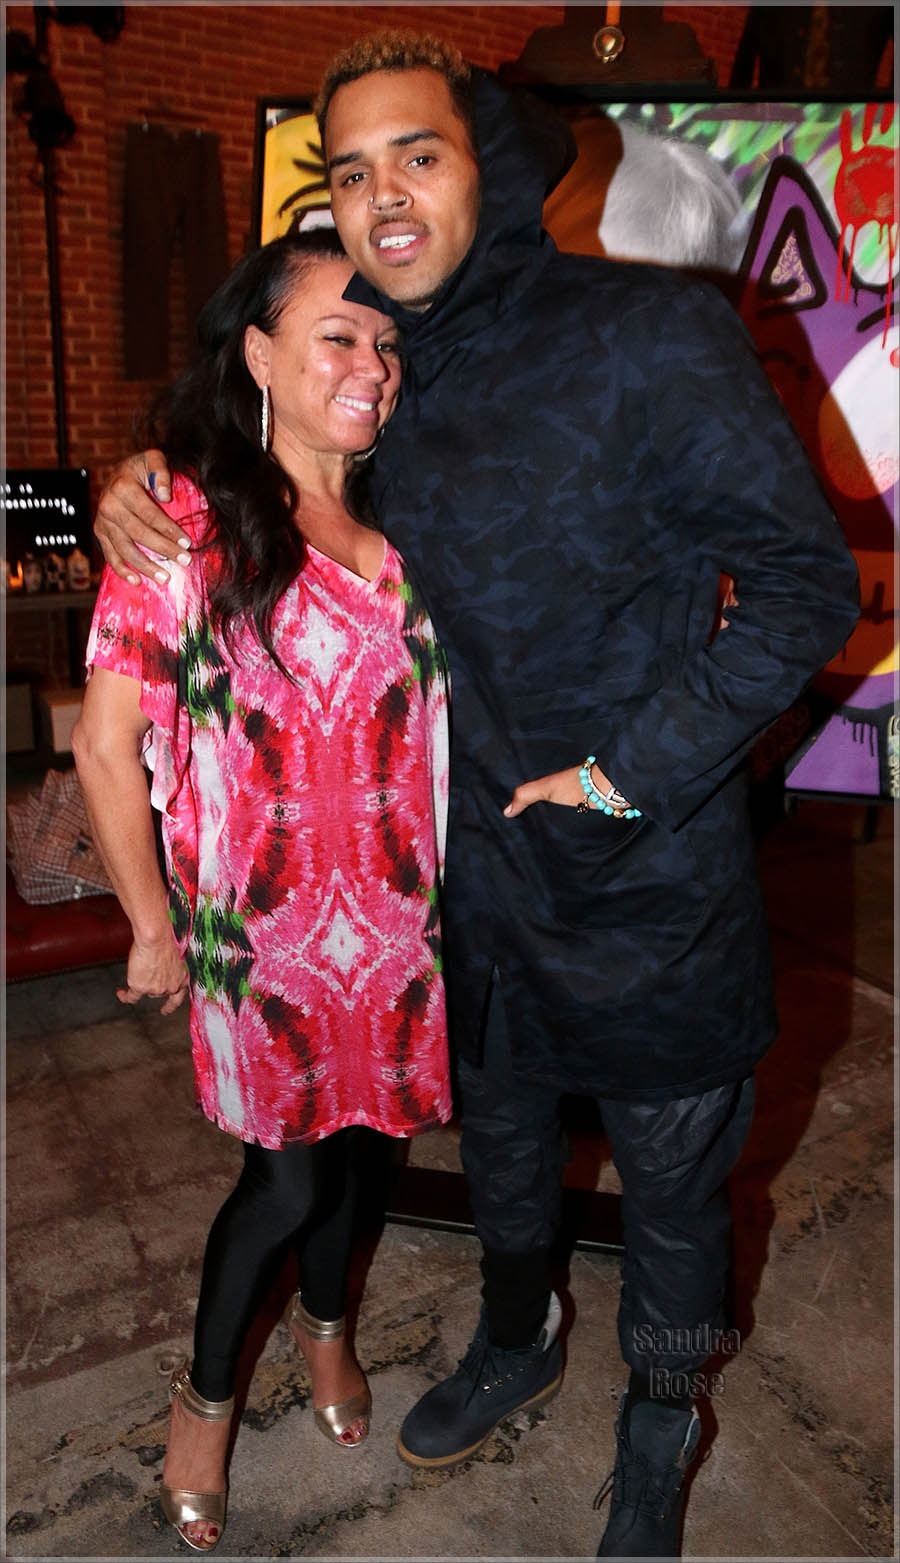 Chris Brown and Karen Bystedt Exclusive Serigraph Signing Benefit Symphonic Love Foundation